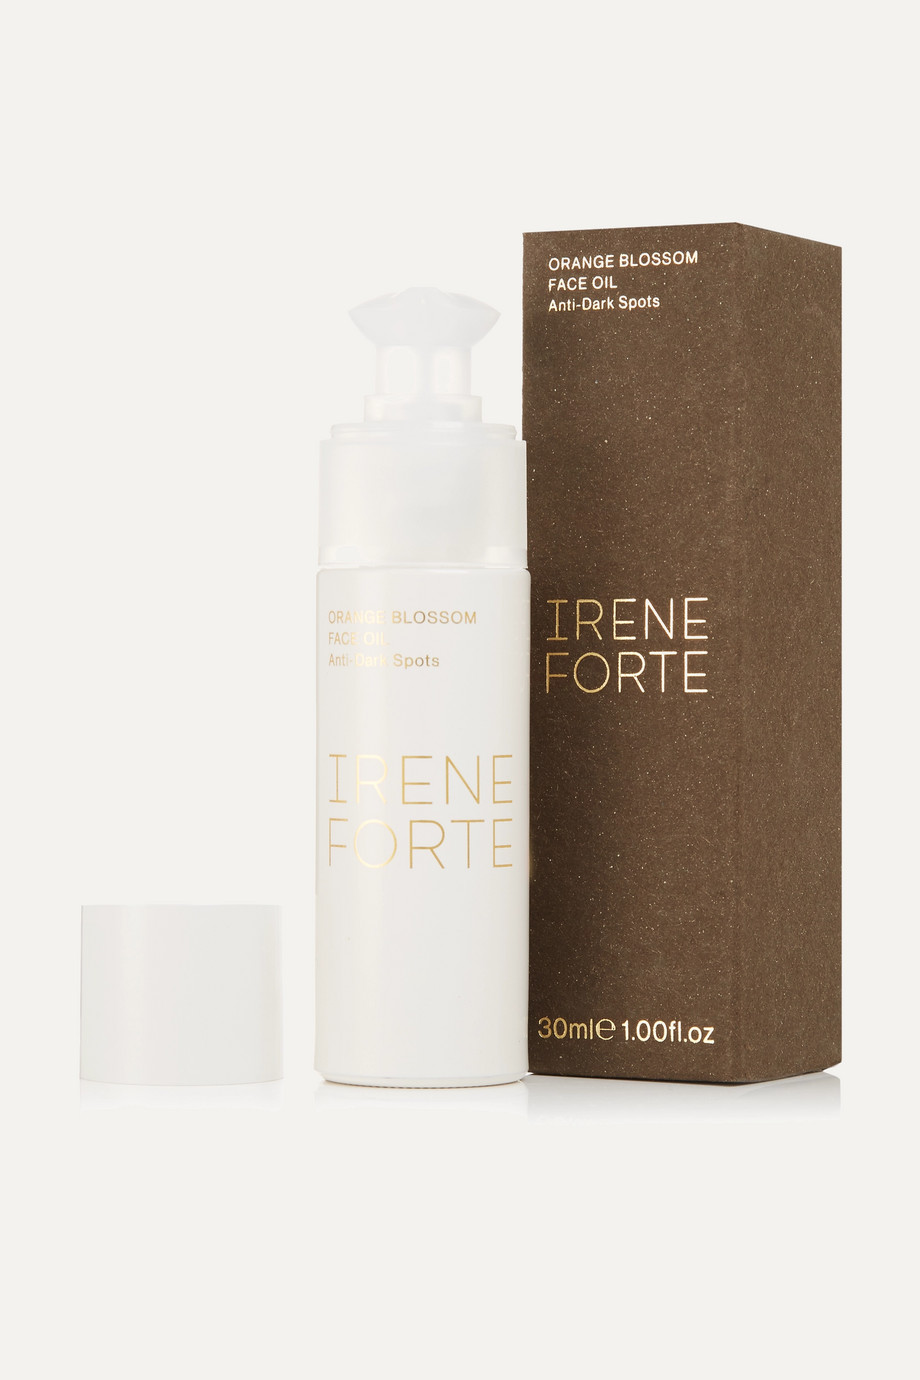 Irene Forte + NET SUSTAIN Anti-Dark Spots Orange Blossom Face Oil, 30ml